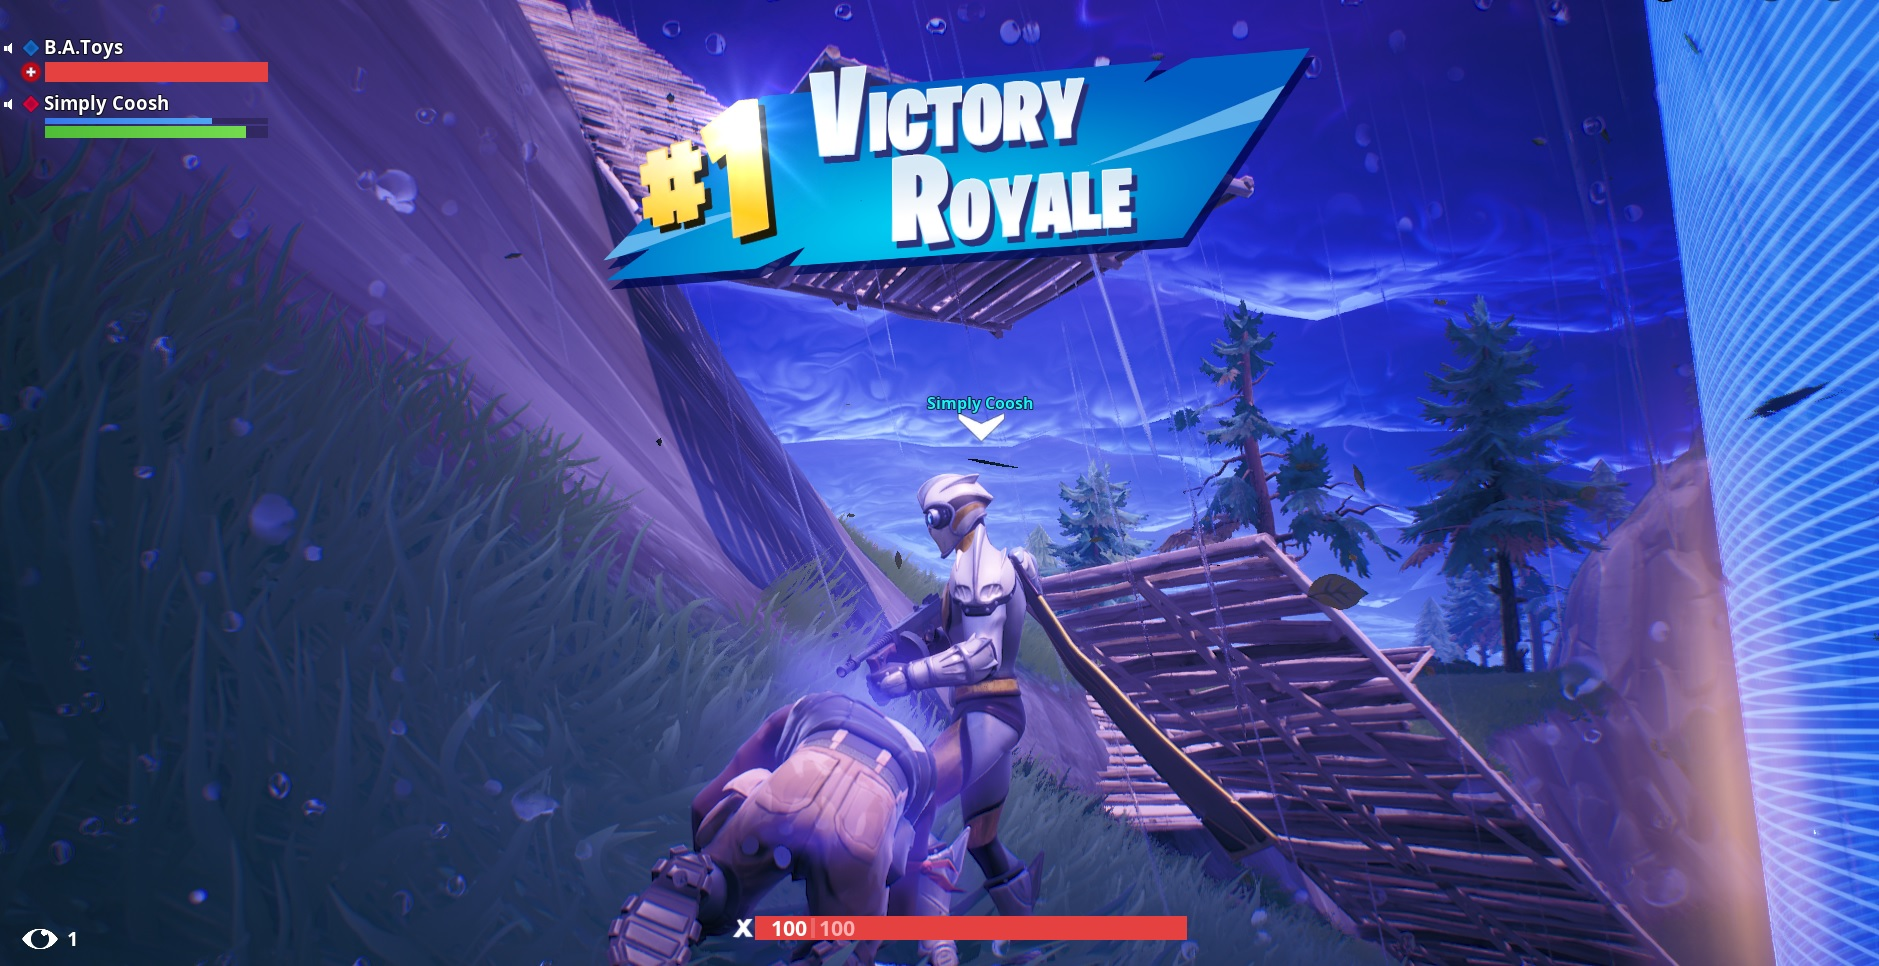 b.a. toys duo victory in fortnite